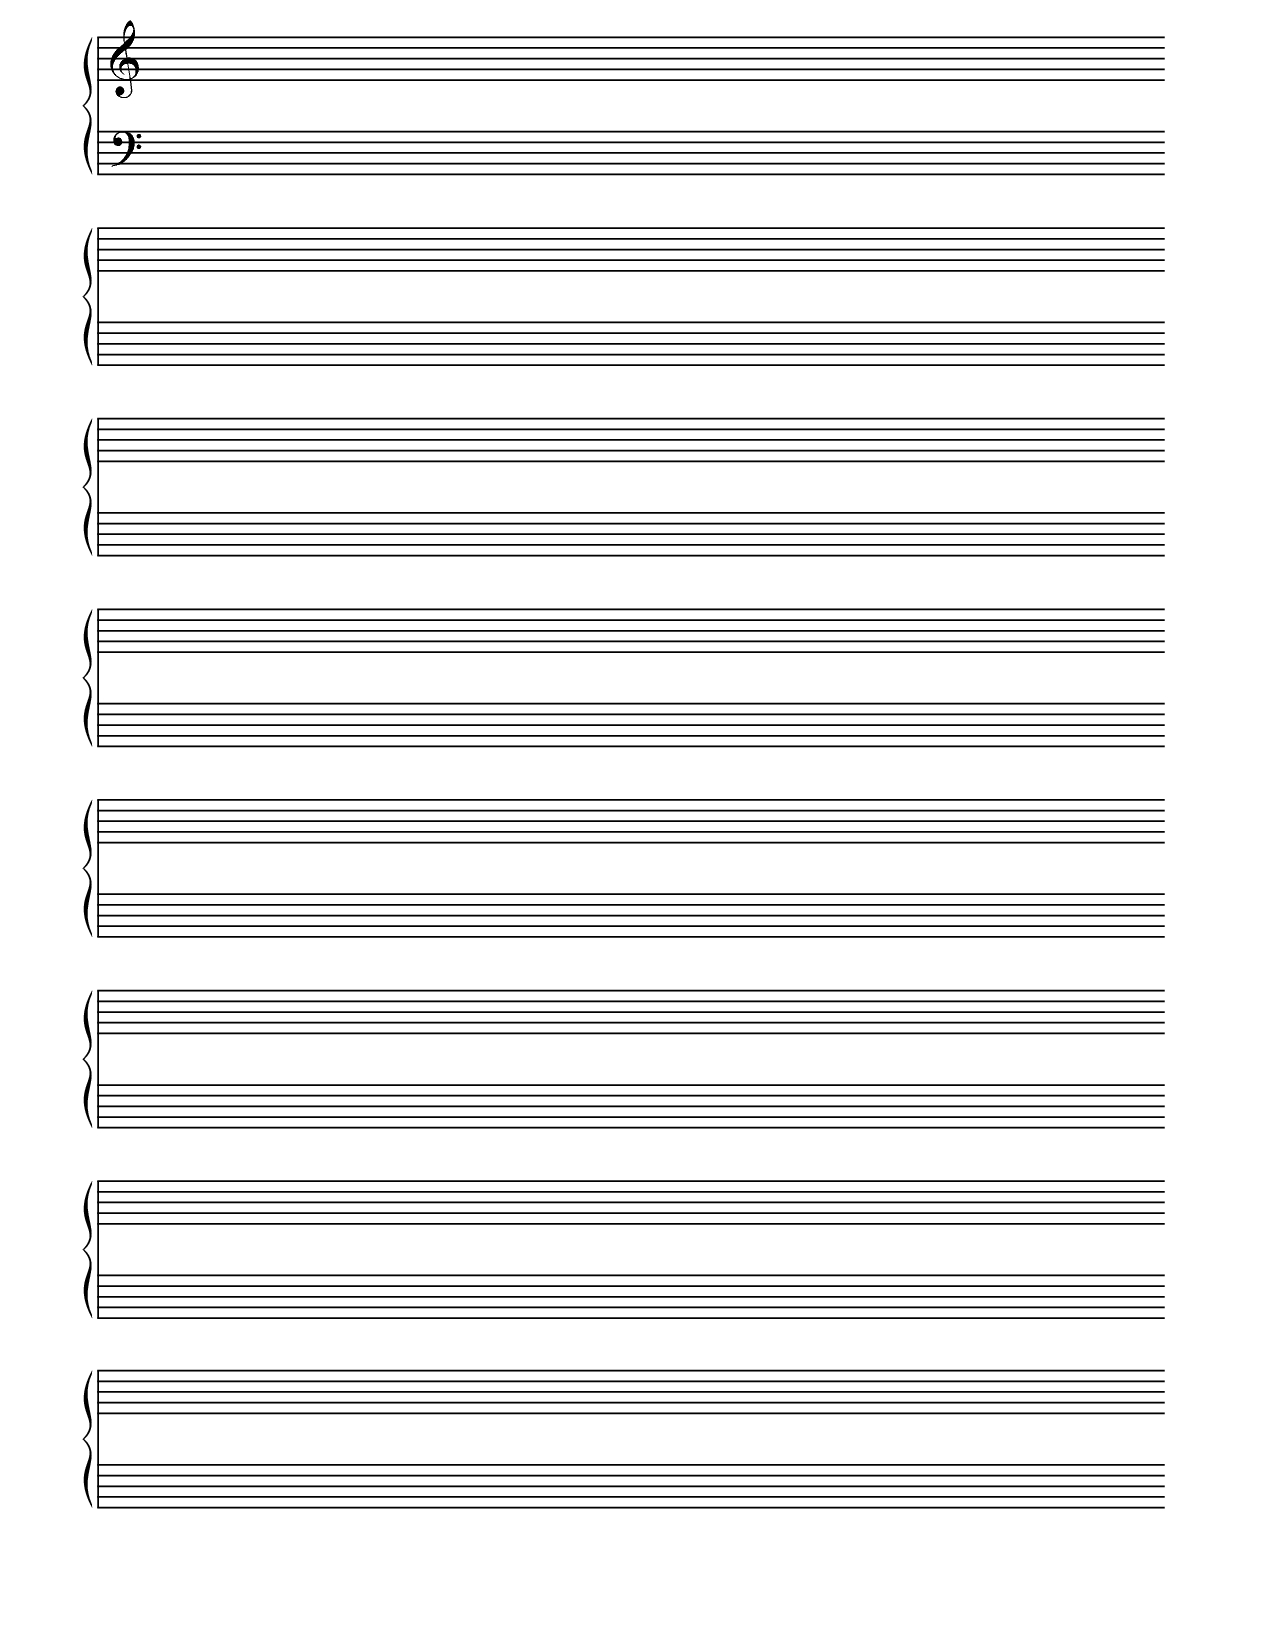 Printable Blank Piano Sheet Music Paper | Print In 2019 | Blank - Free Printable Blank Music Staff Paper